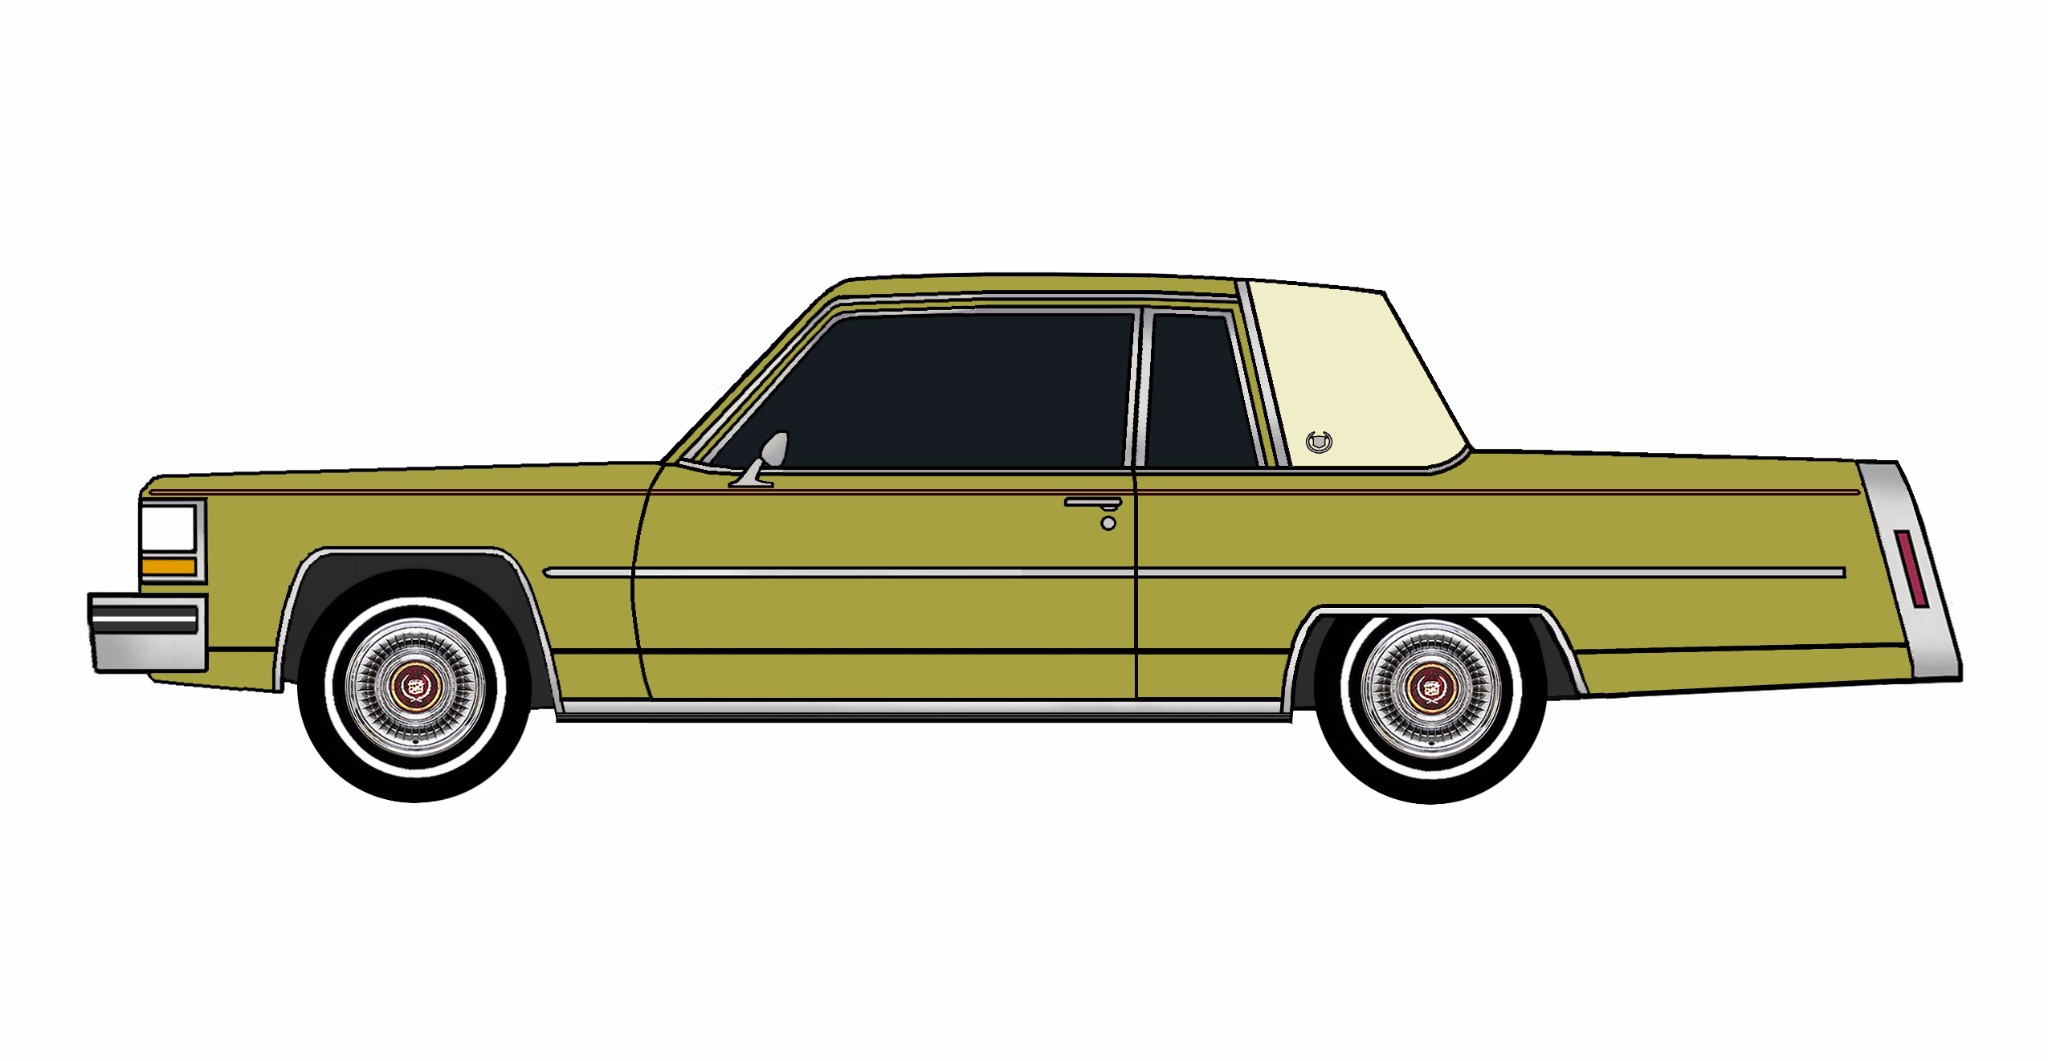 1981 Cadillac Coupe Deville GOLDEN OLIVE